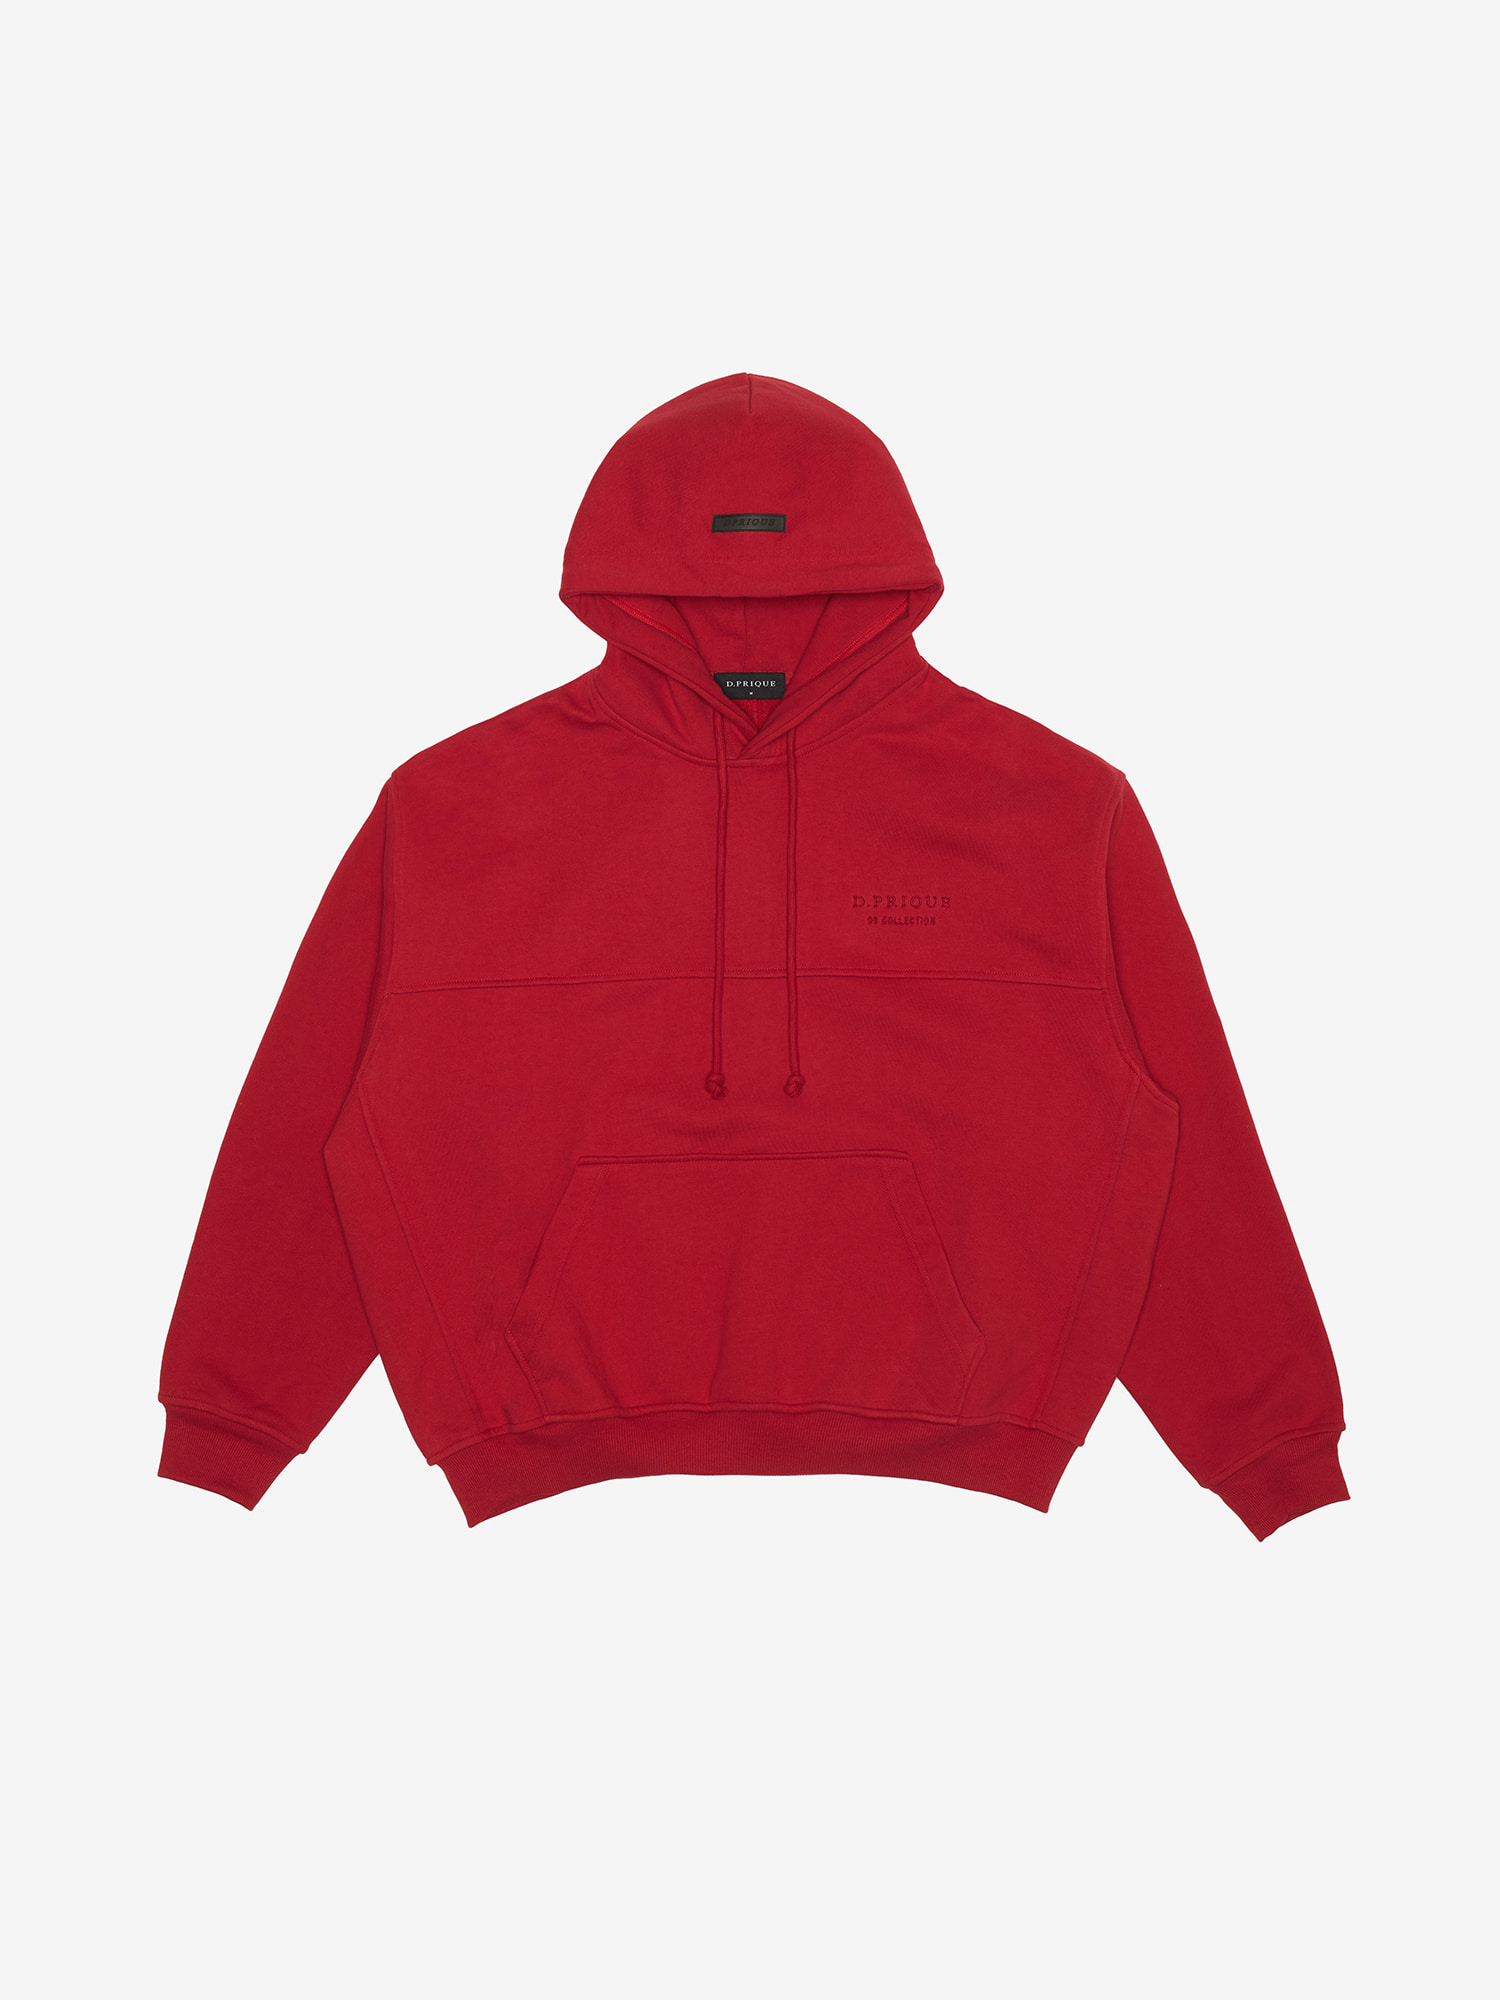 06 Oversized Hoodie - Red